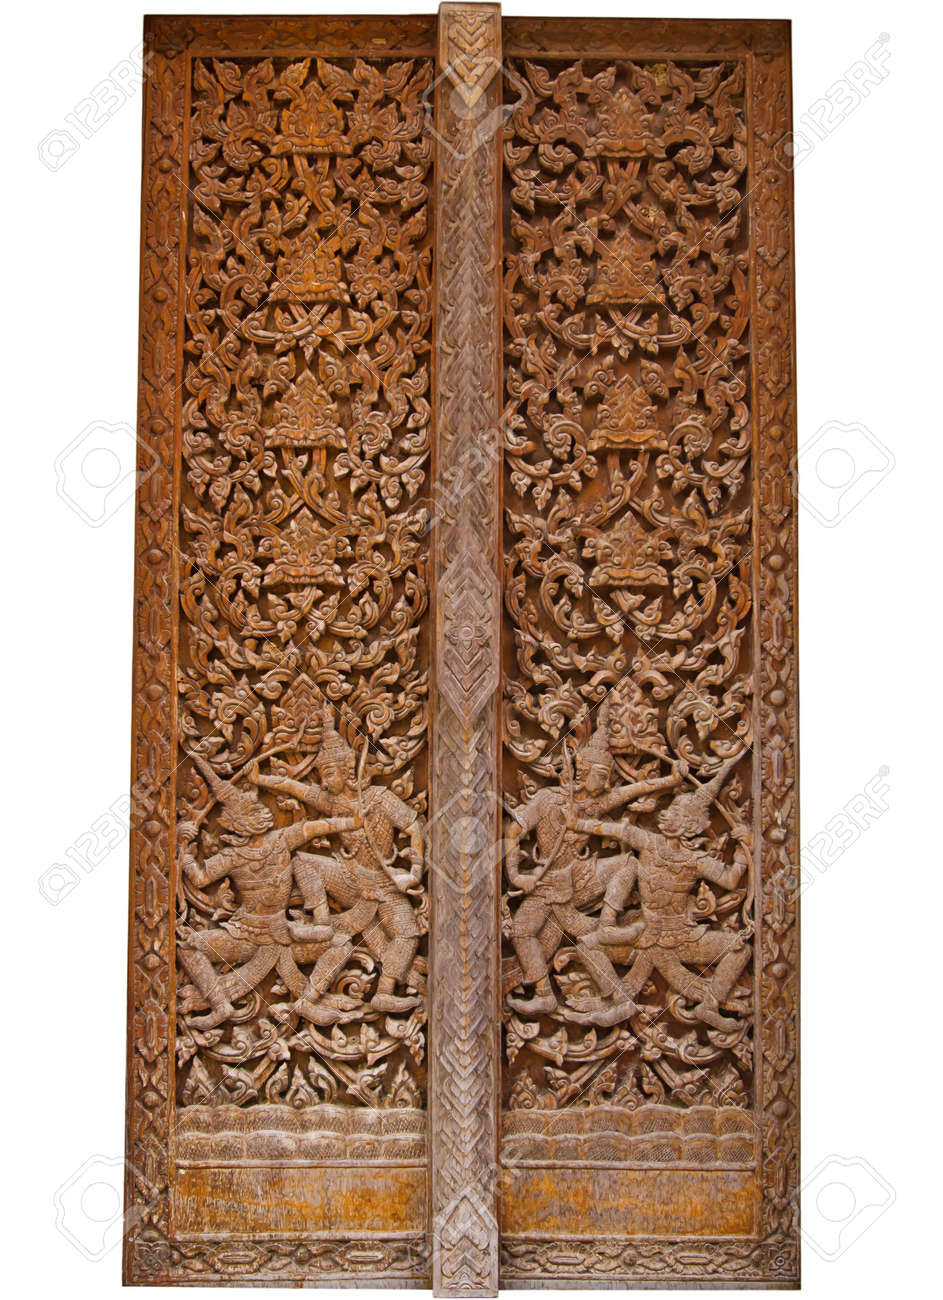 ancient wood carvings door Stock Photo - 10841812  sc 1 st  123RF.com & Ancient Wood Carvings Door Stock Photo Picture And Royalty Free ...